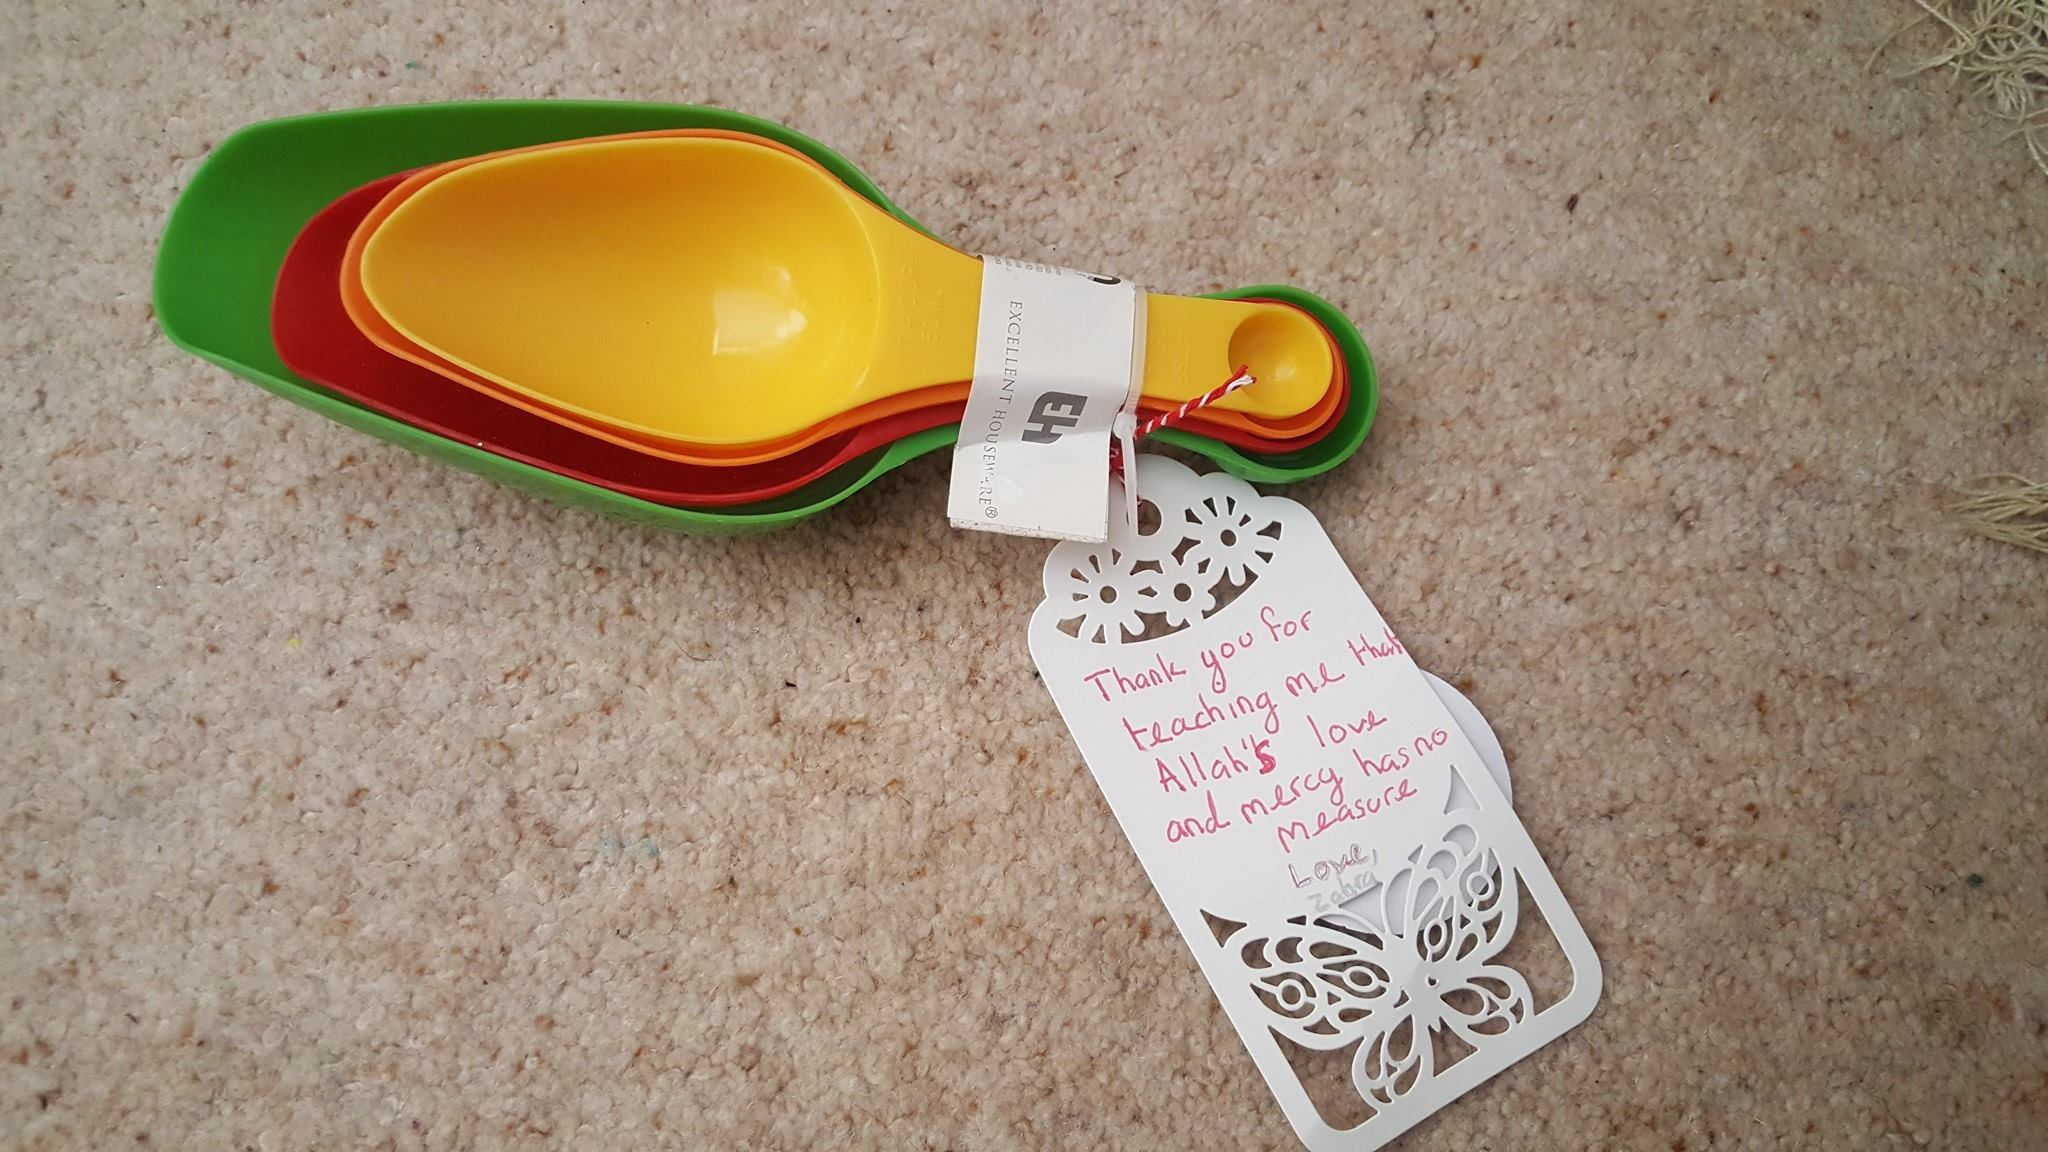 Thoughtful Gift Ideas 25: Measuring Cups